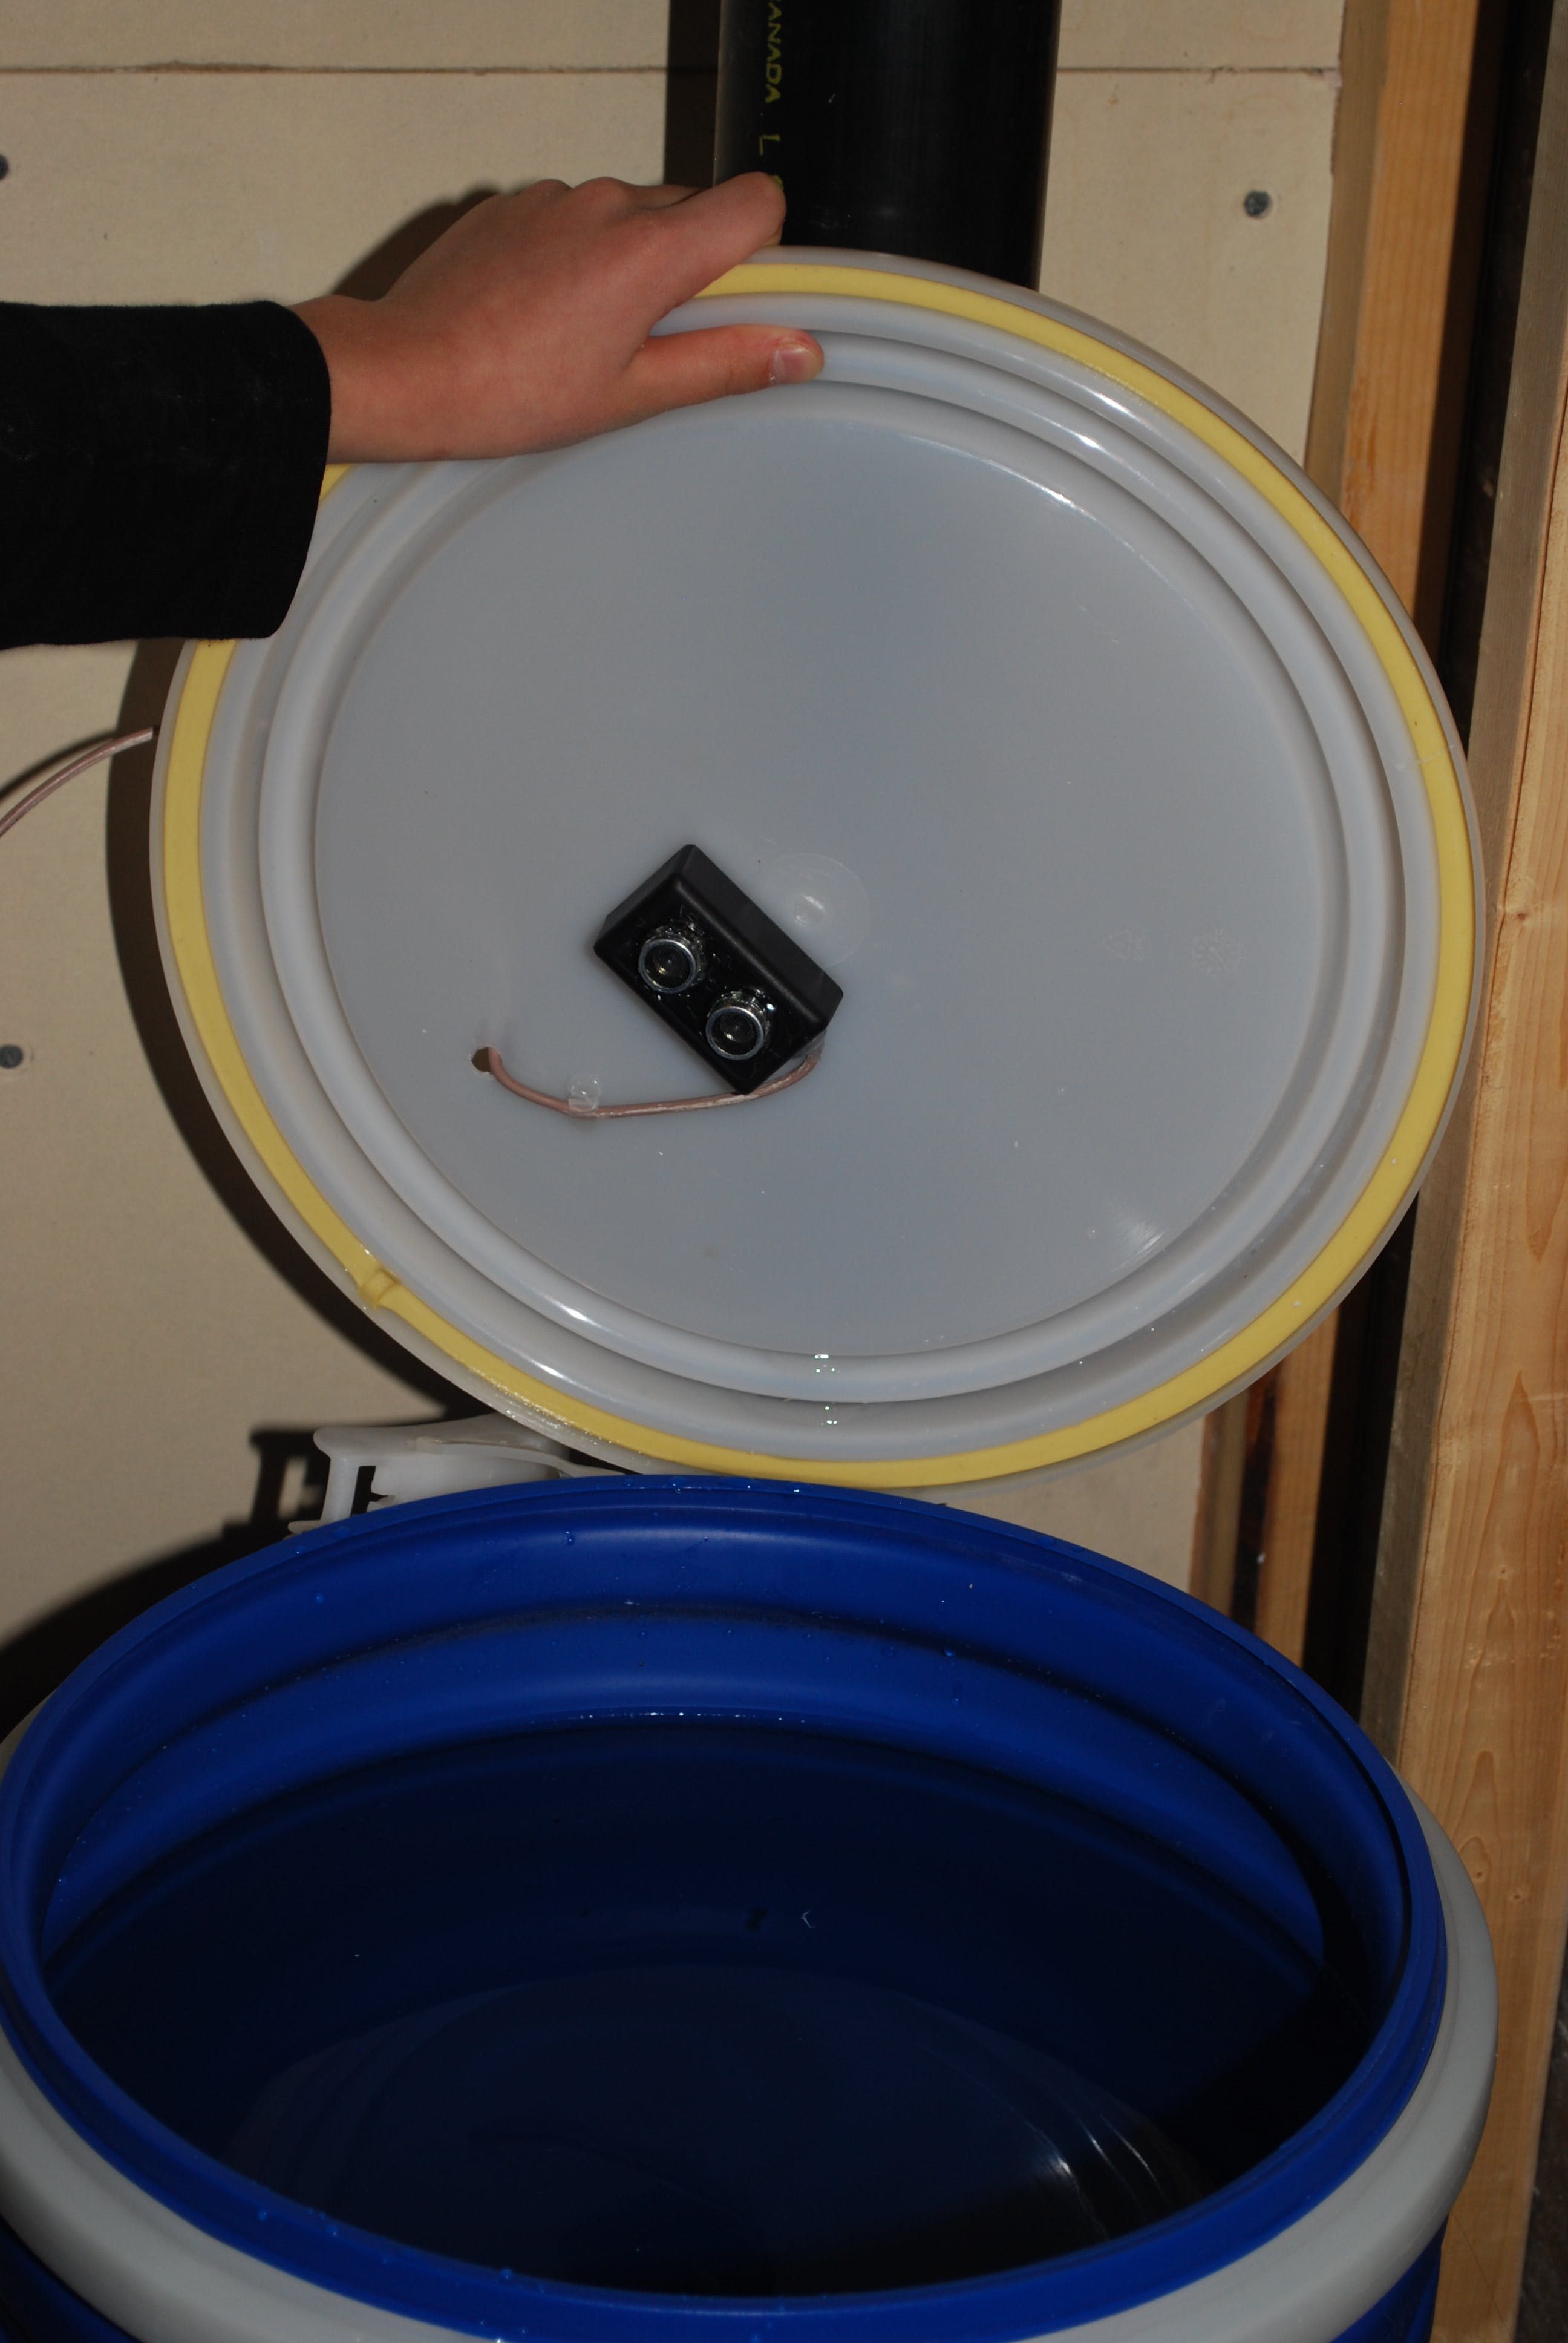 Water level ultrasonic sensor. Thanks to my son for help taking pictures :)